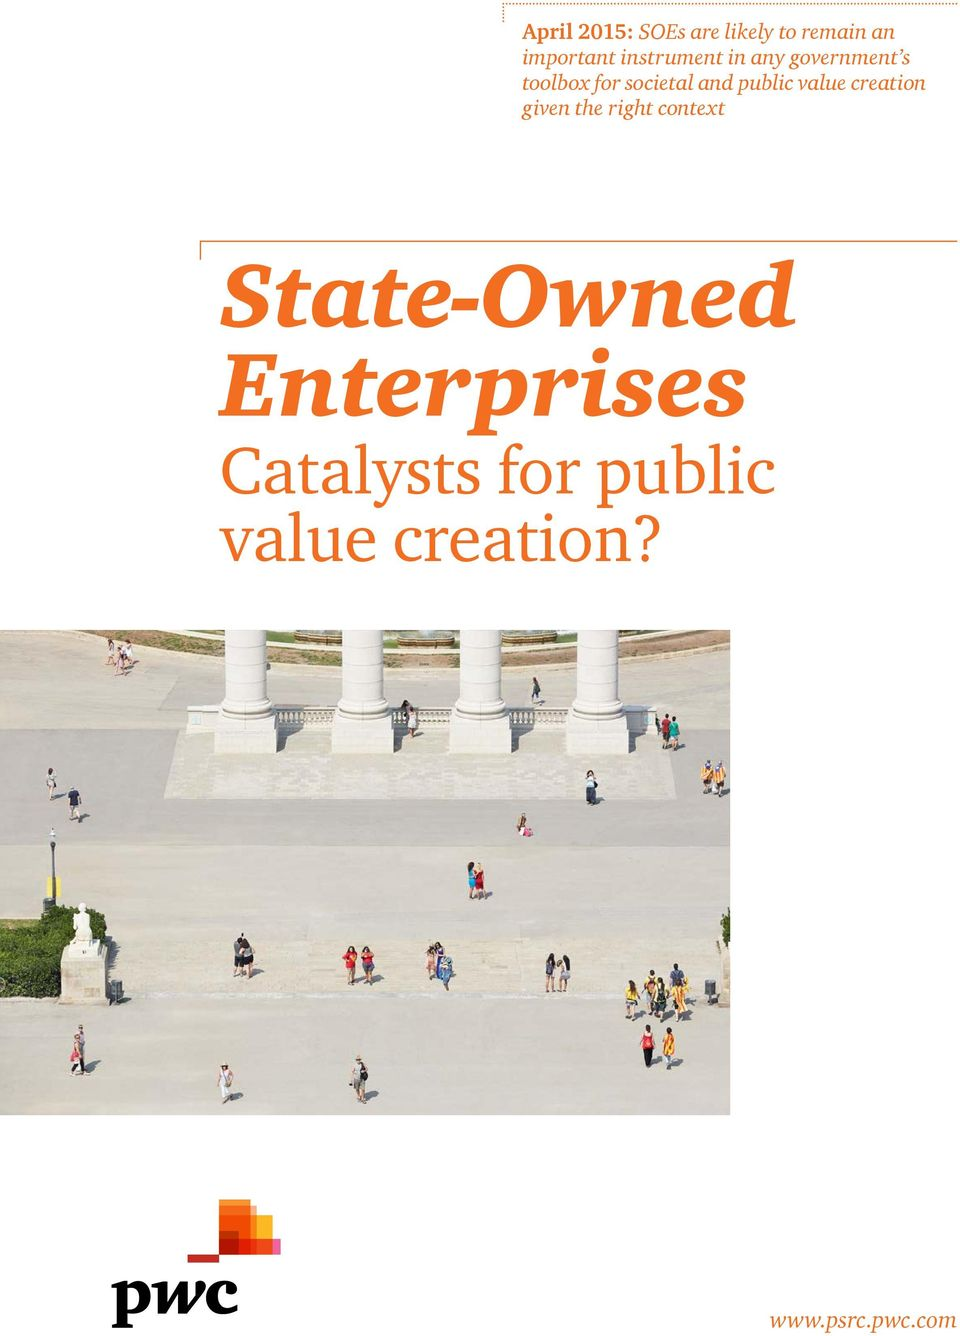 public value creation given the right context State-Owned